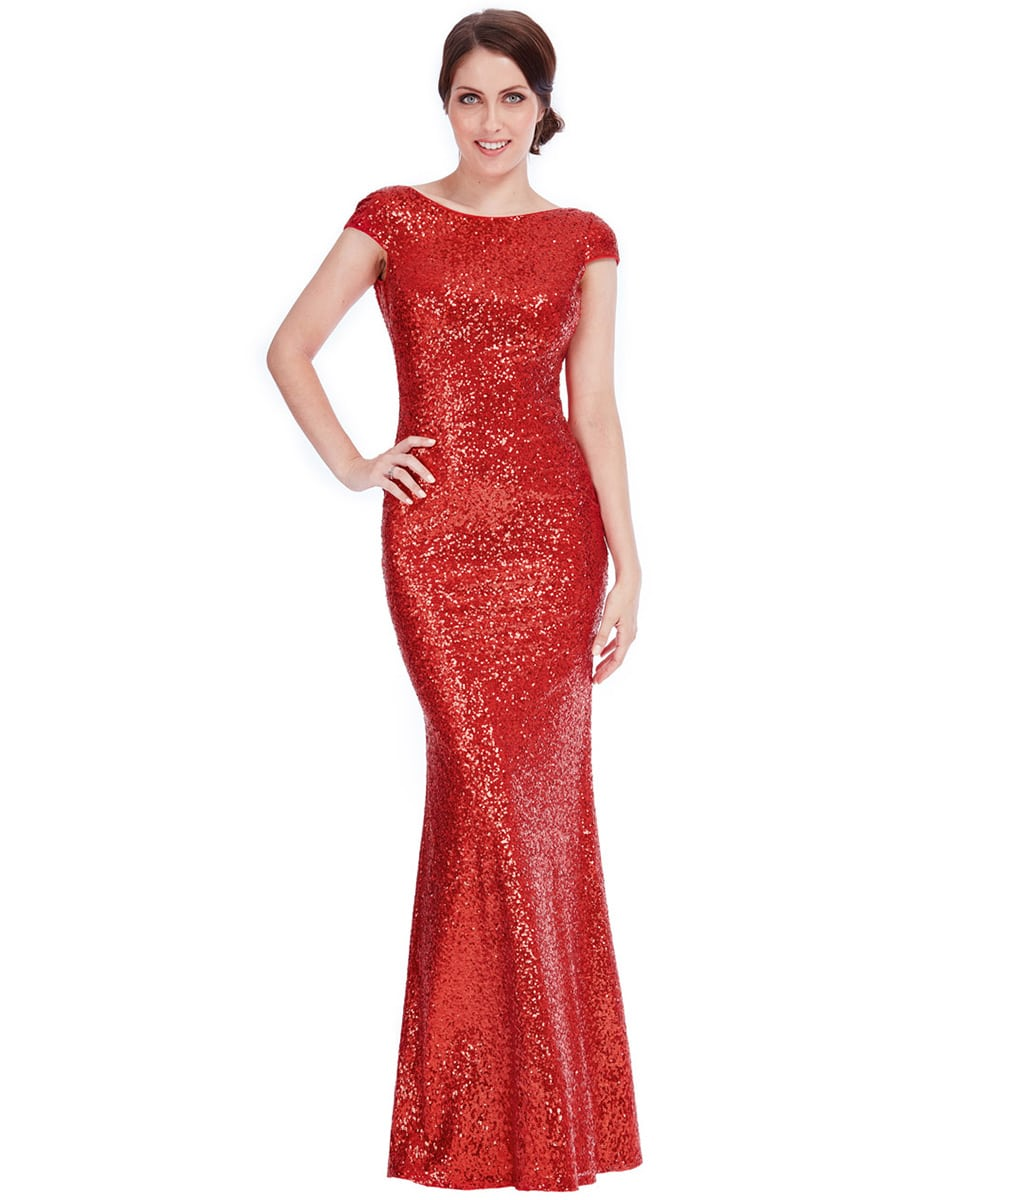 Alila-Red-sequin-cowel-back-bridesmaid-dress-city-goddess